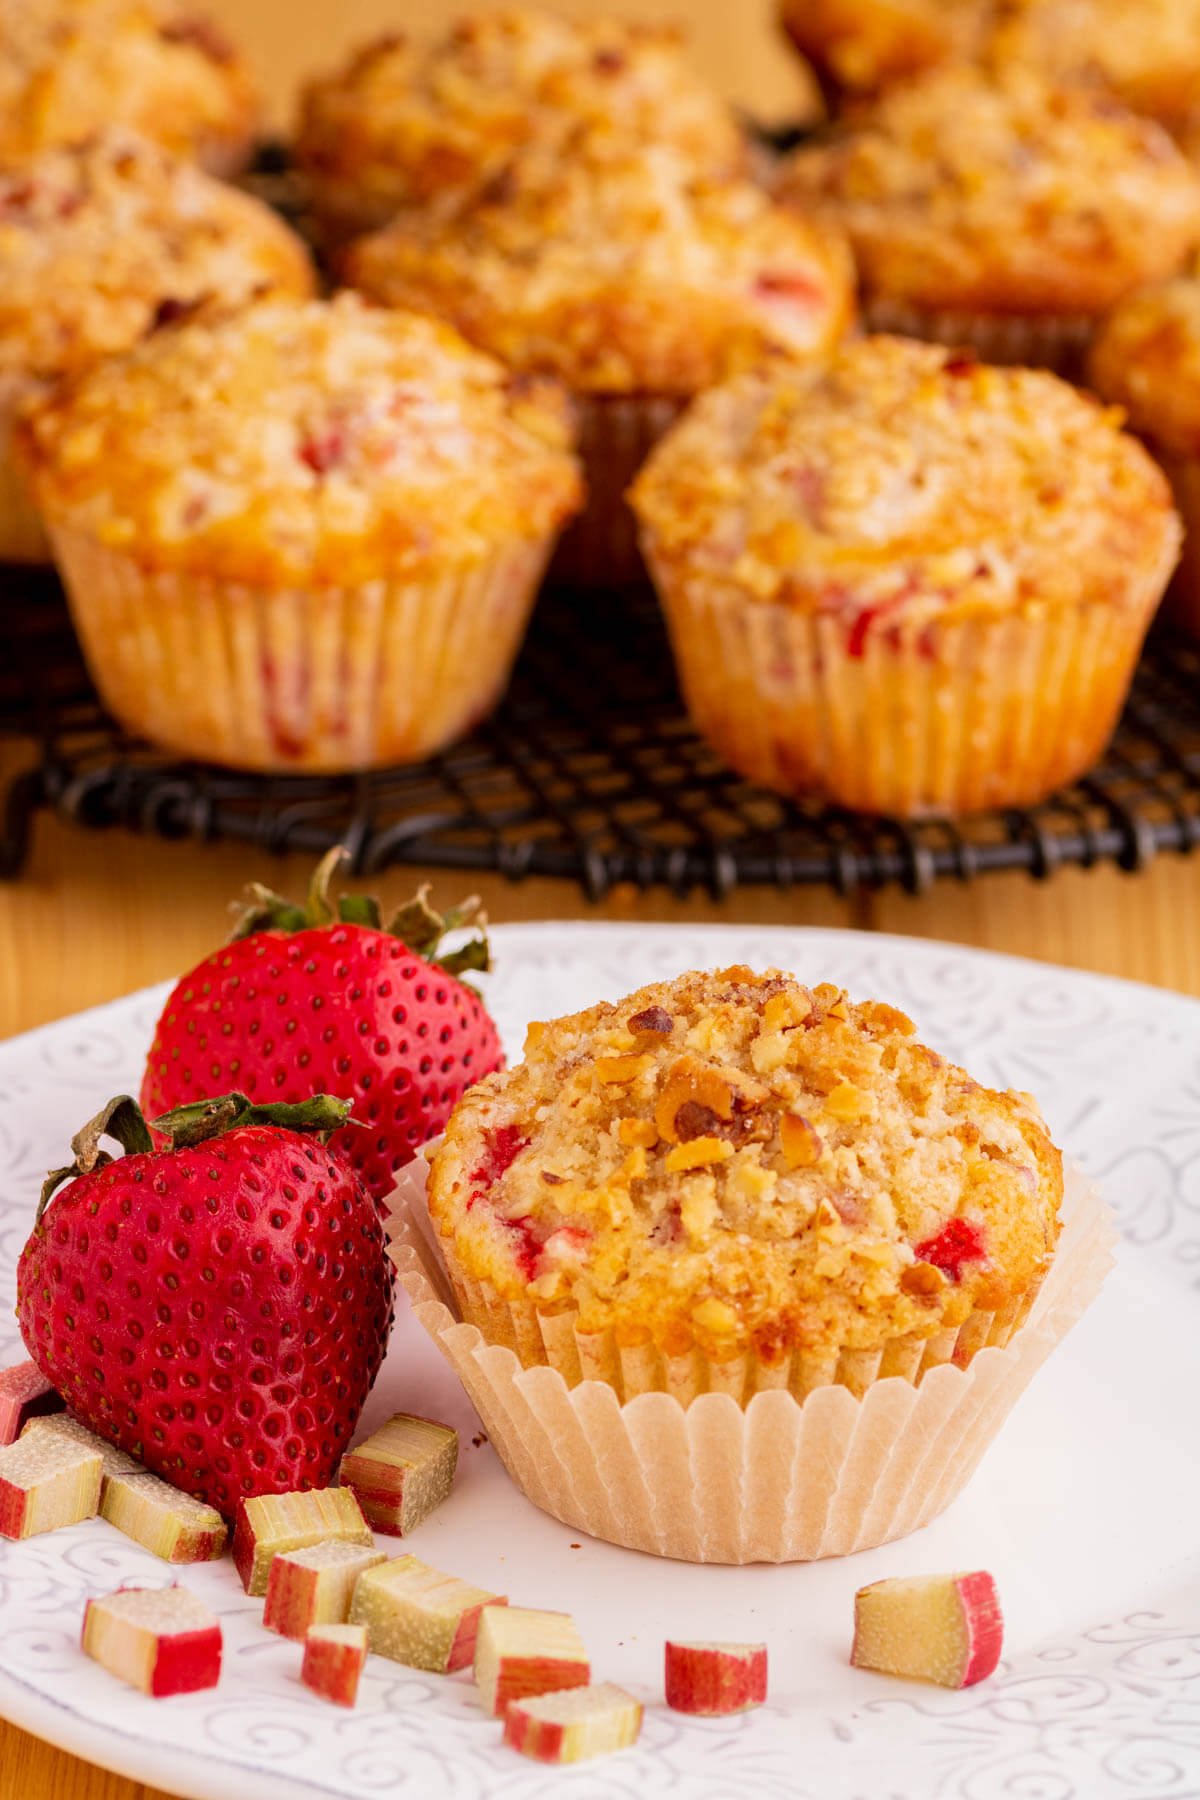 A strawberry rhubarb muffin on a white plate with whole red strawberries and chopped rhubarb.